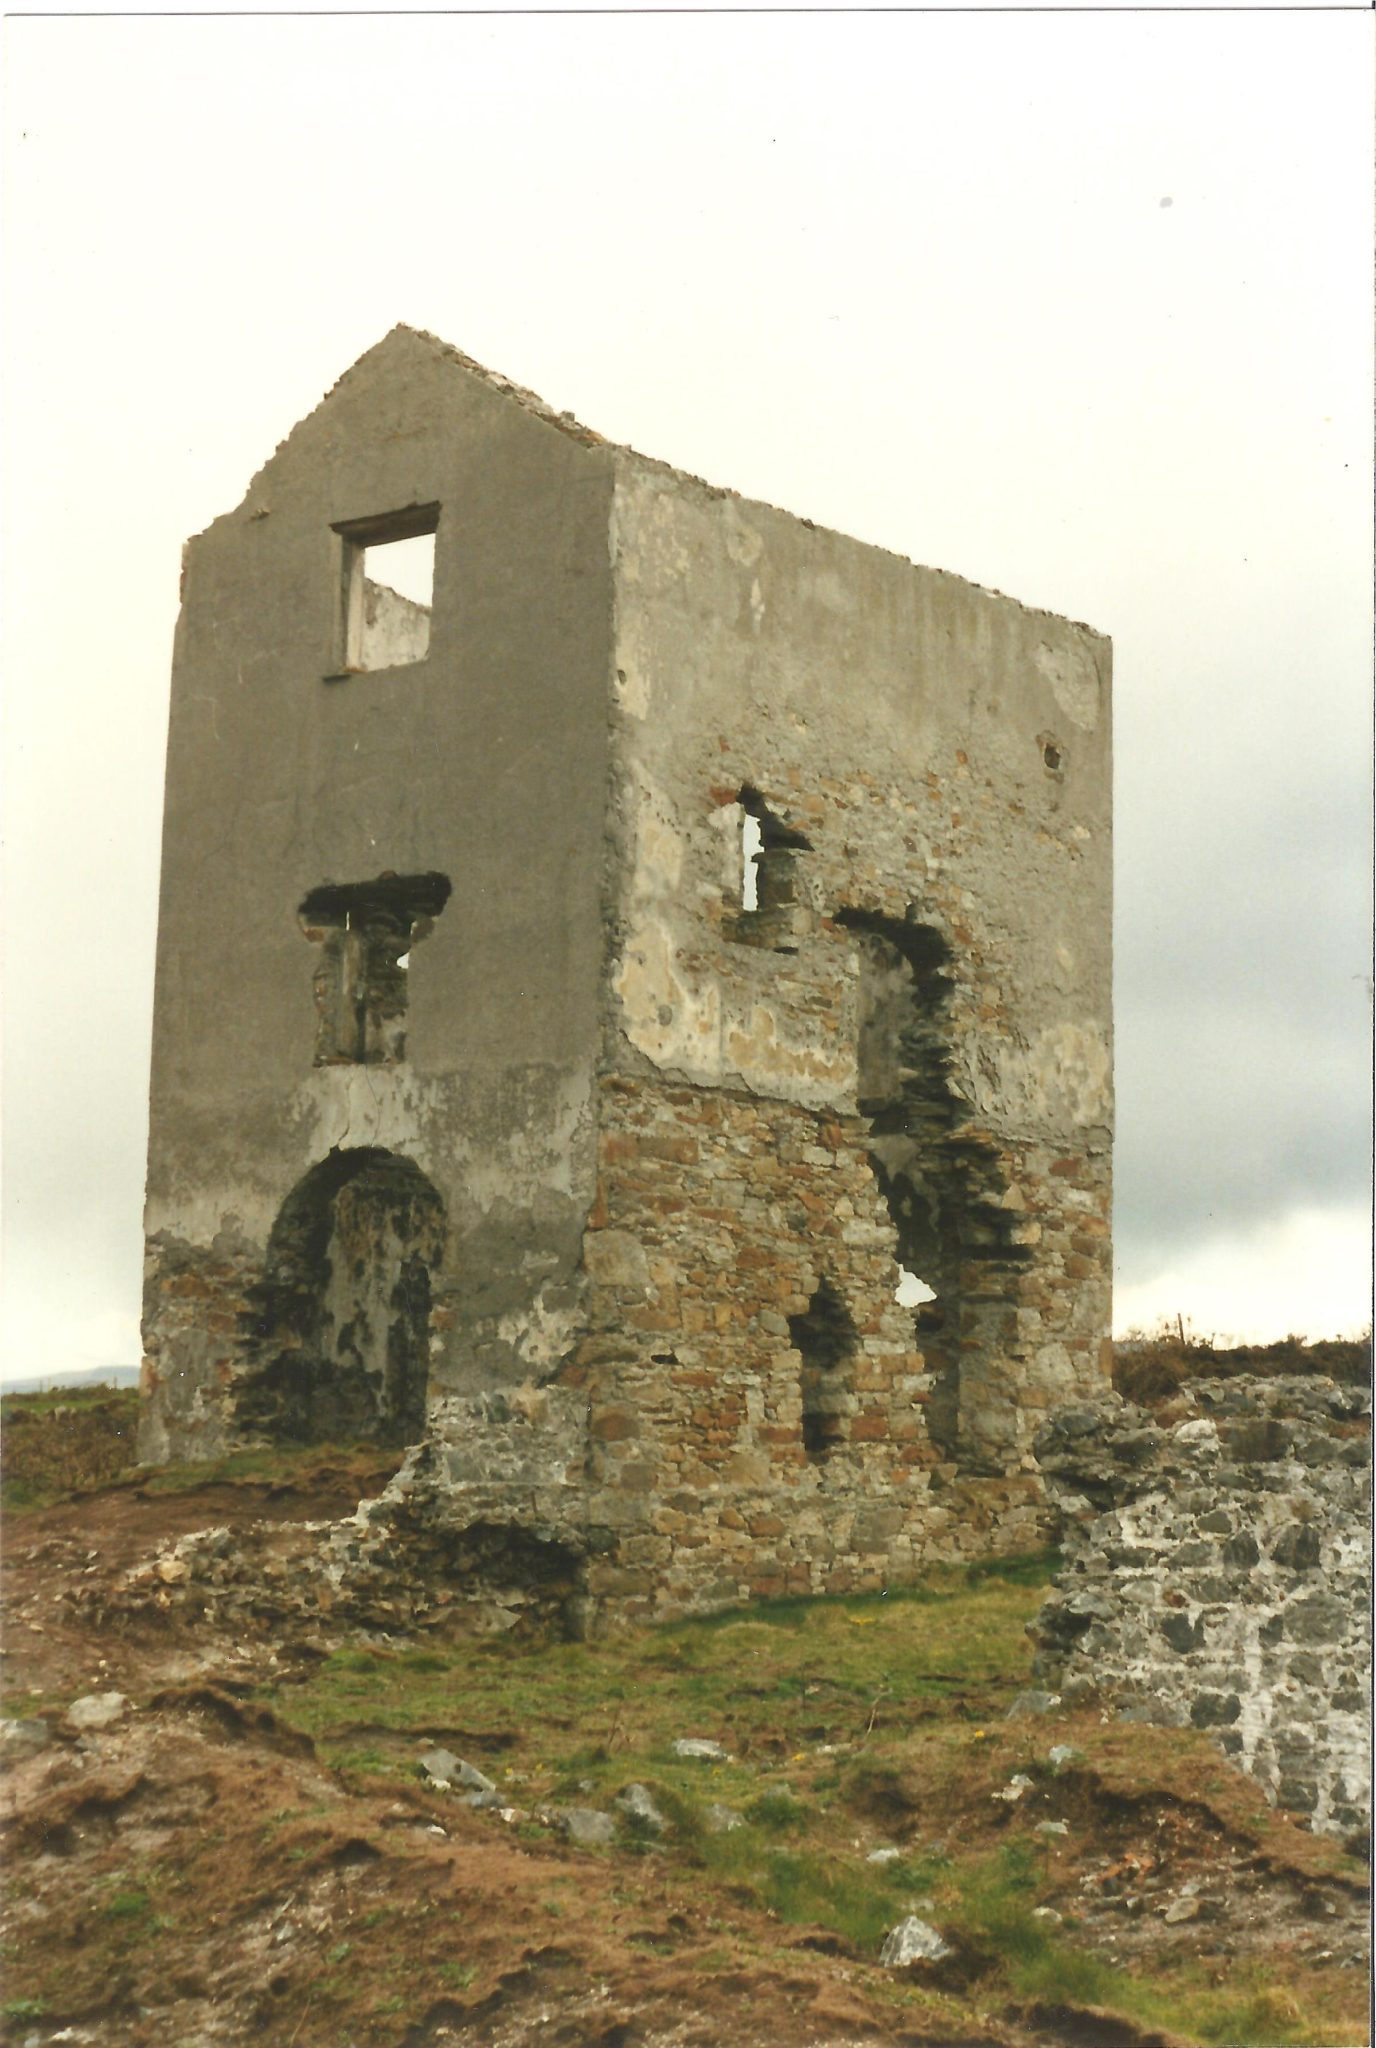 Engine house at Knockmahon copper mines near Tramore, Eire. Photo: Peter Burgess